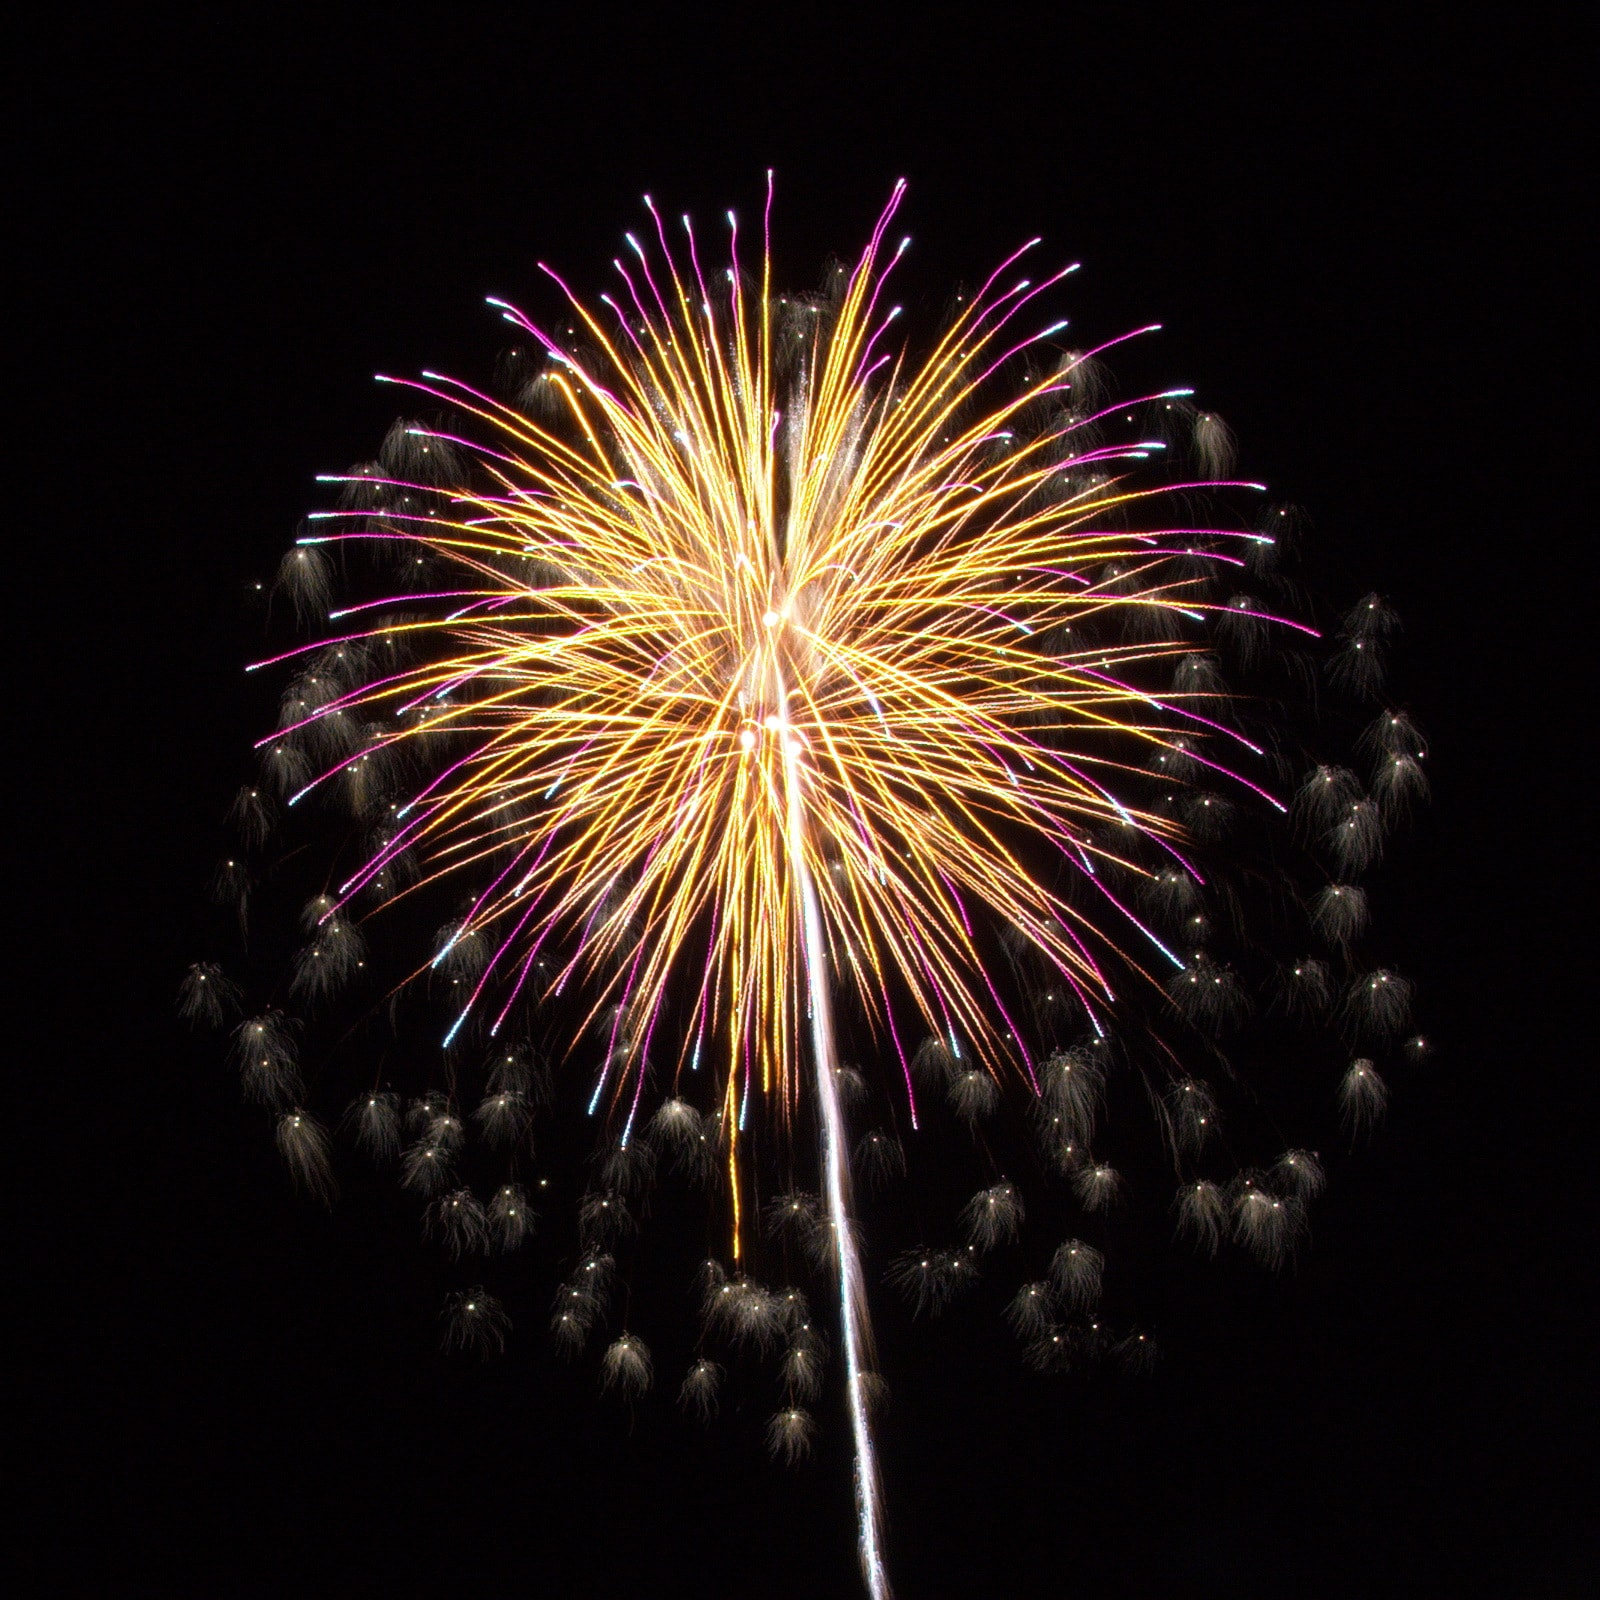 Cape Cod Fireworks: Yellow and purple